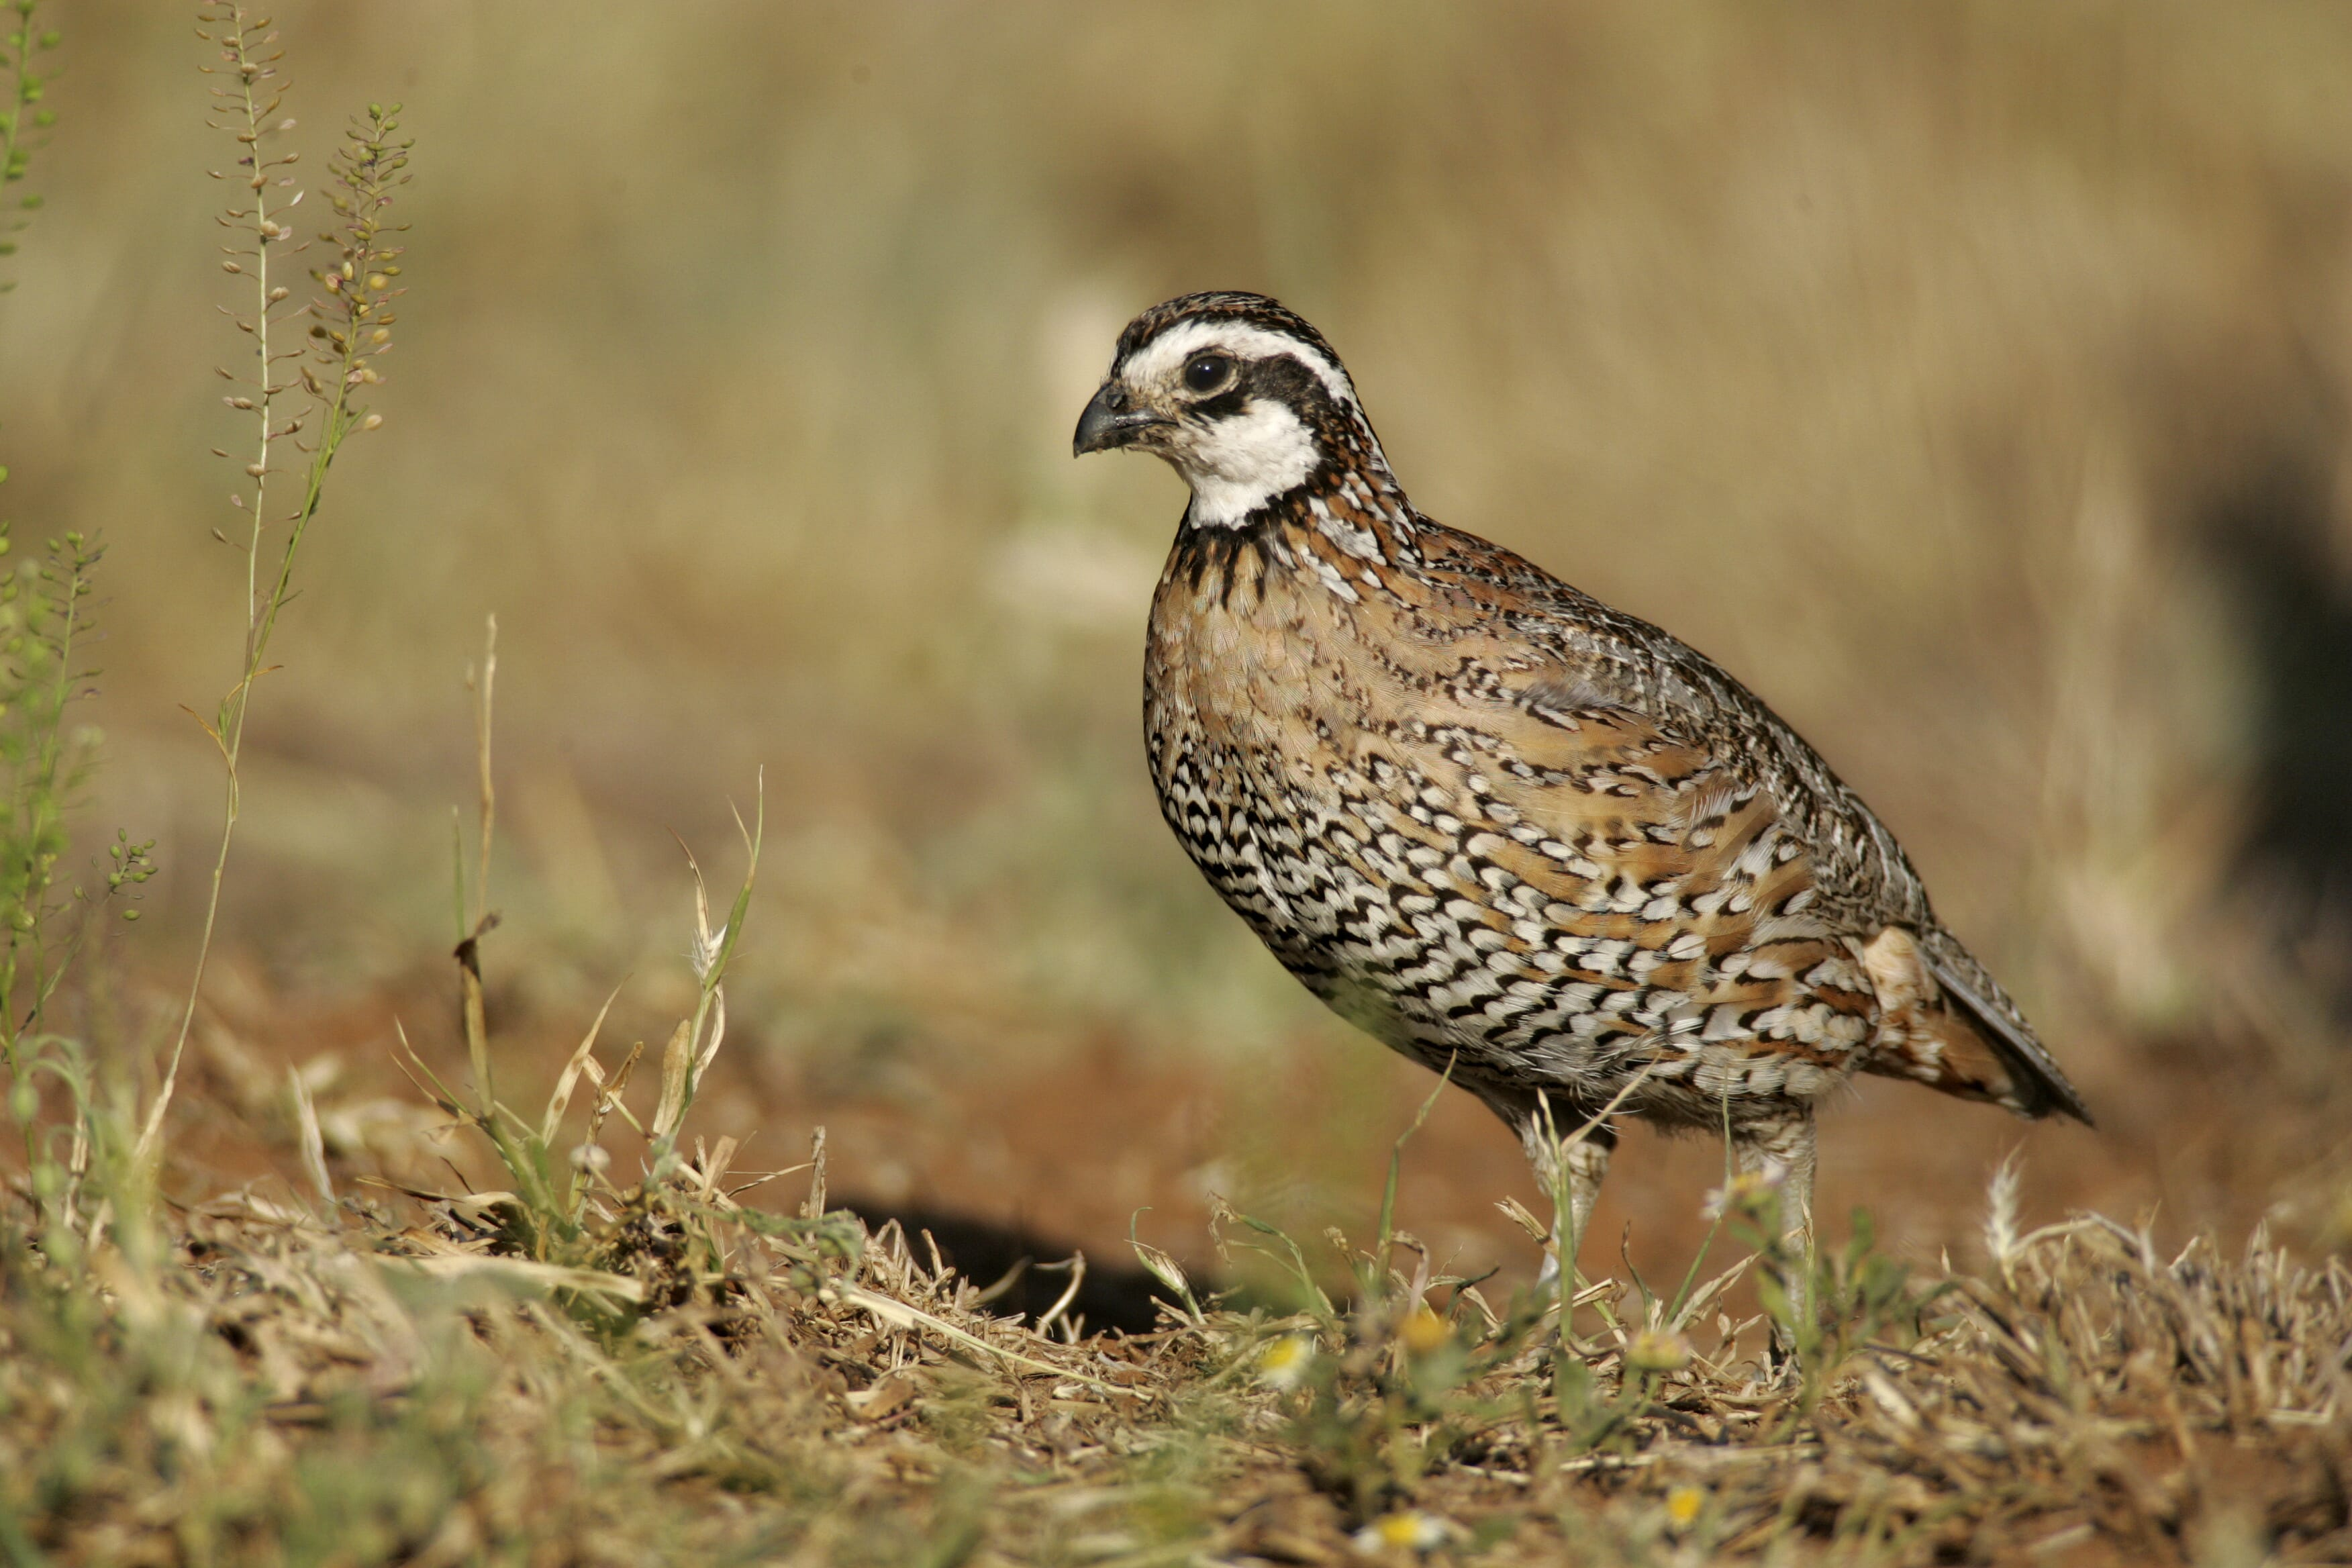 150 Northern Bobwhite Quail Hatching Eggs